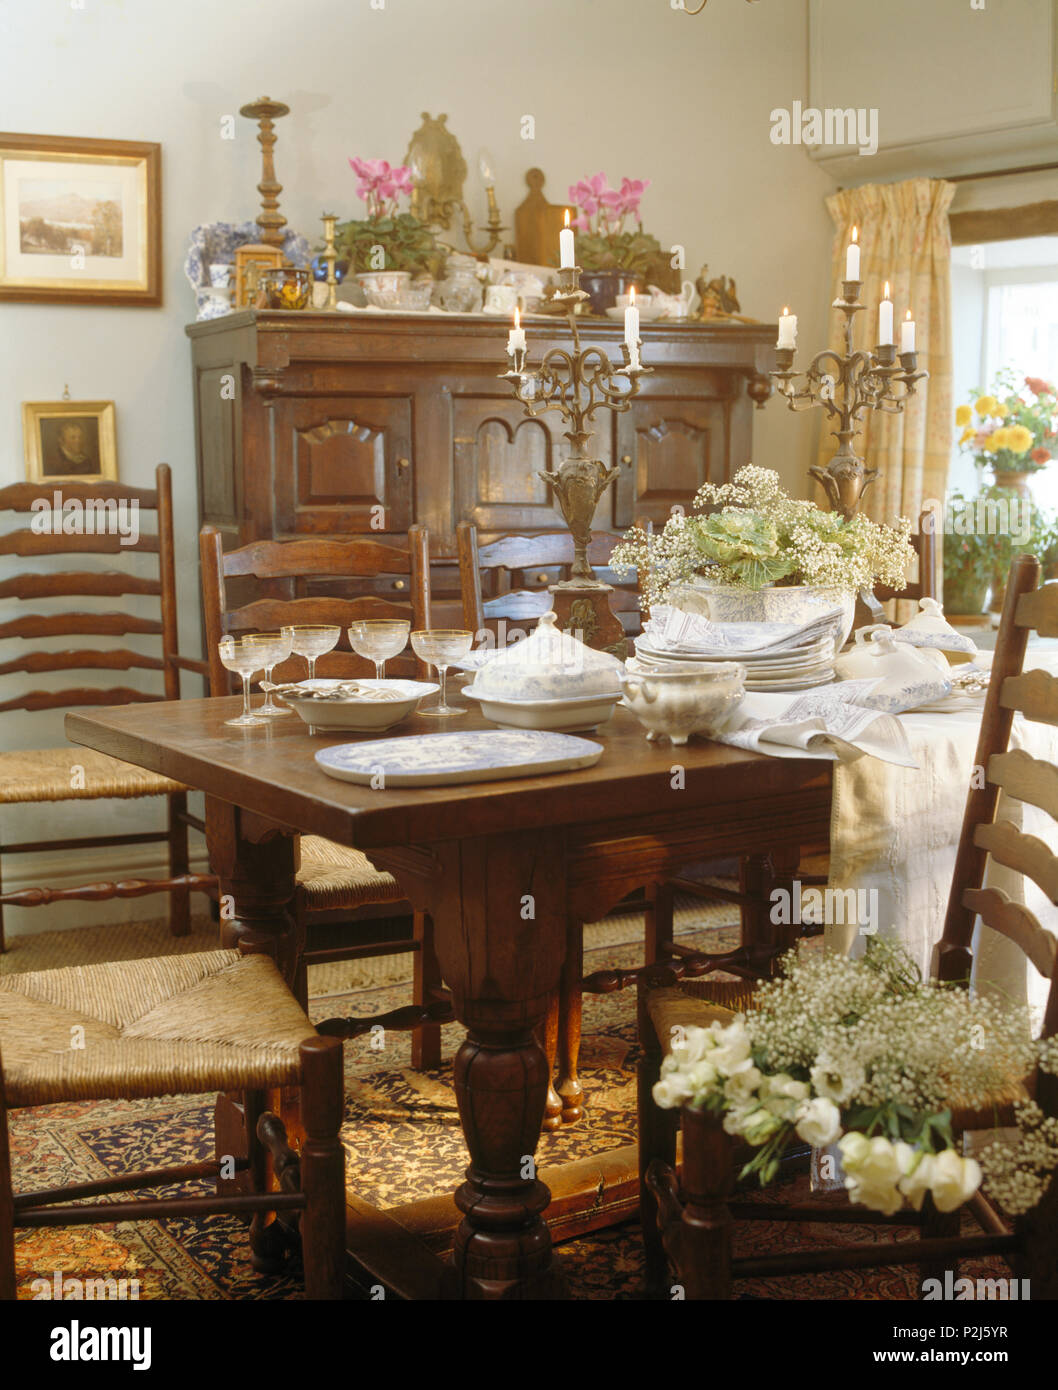 Vintage Ladderback Chairs At Old Oak Table In Country Dining Room Stock Photo Alamy